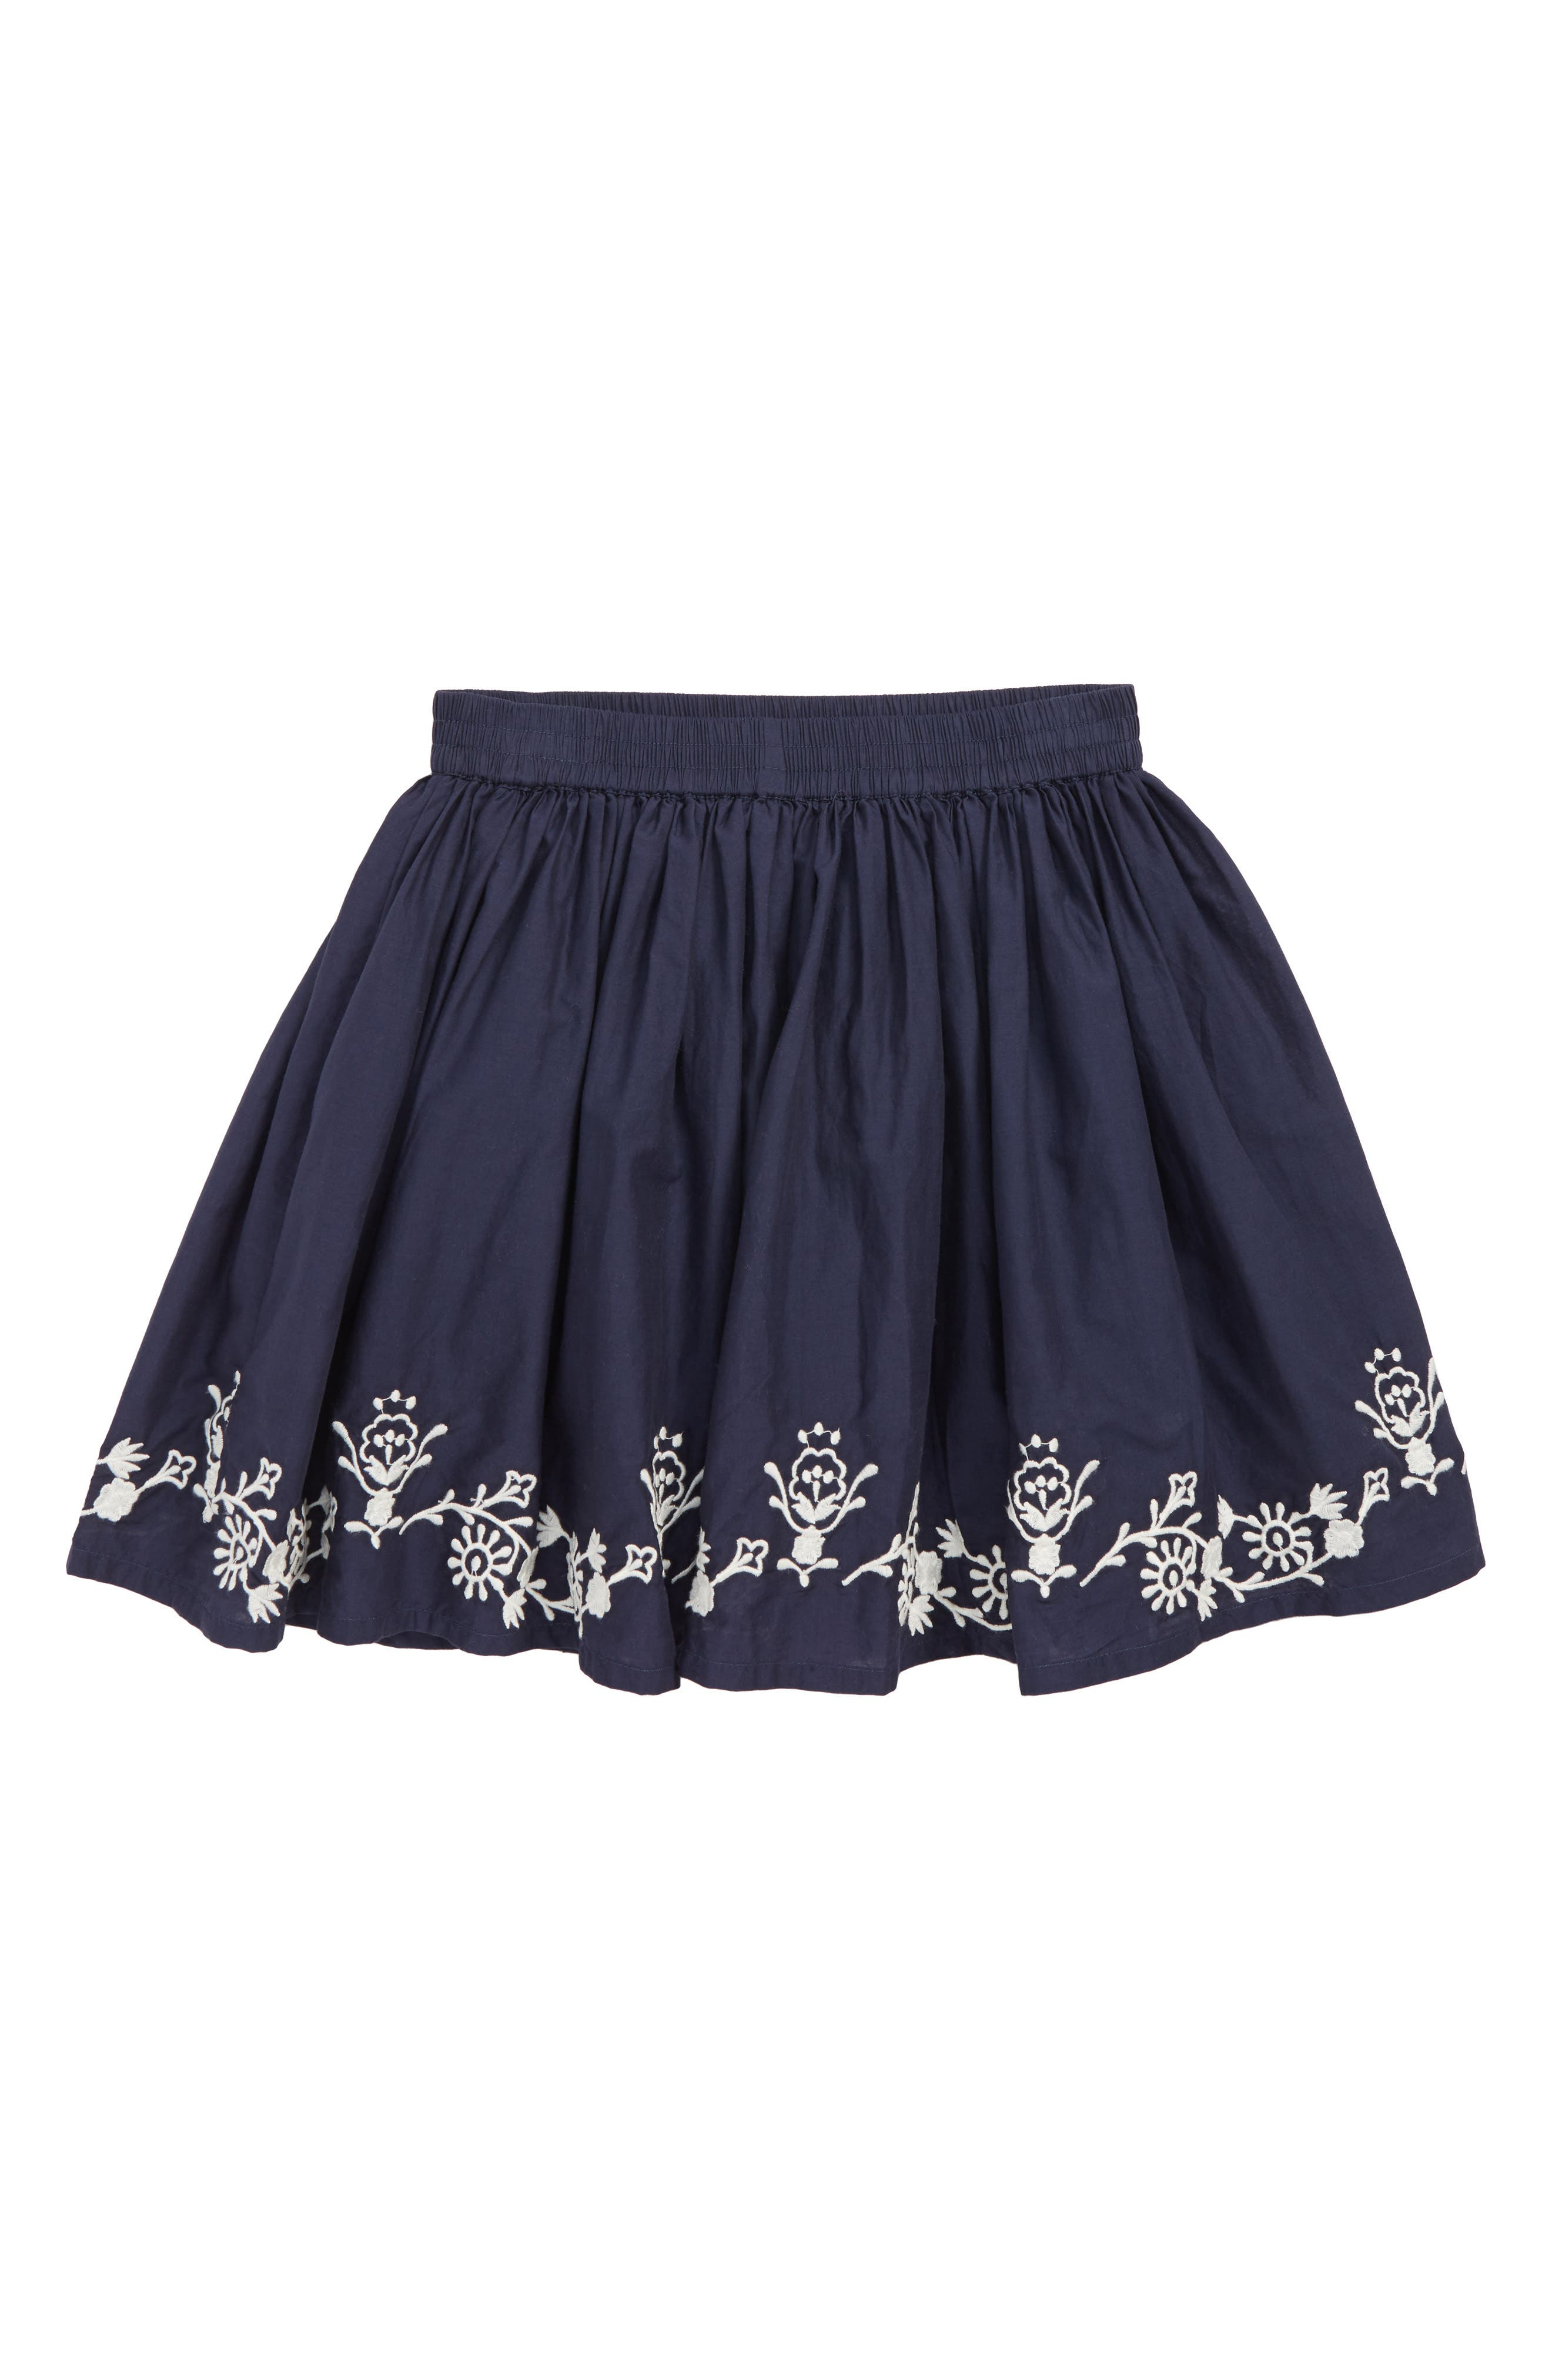 Embroidered Skirt,                         Main,                         color, NAVY PEACOAT